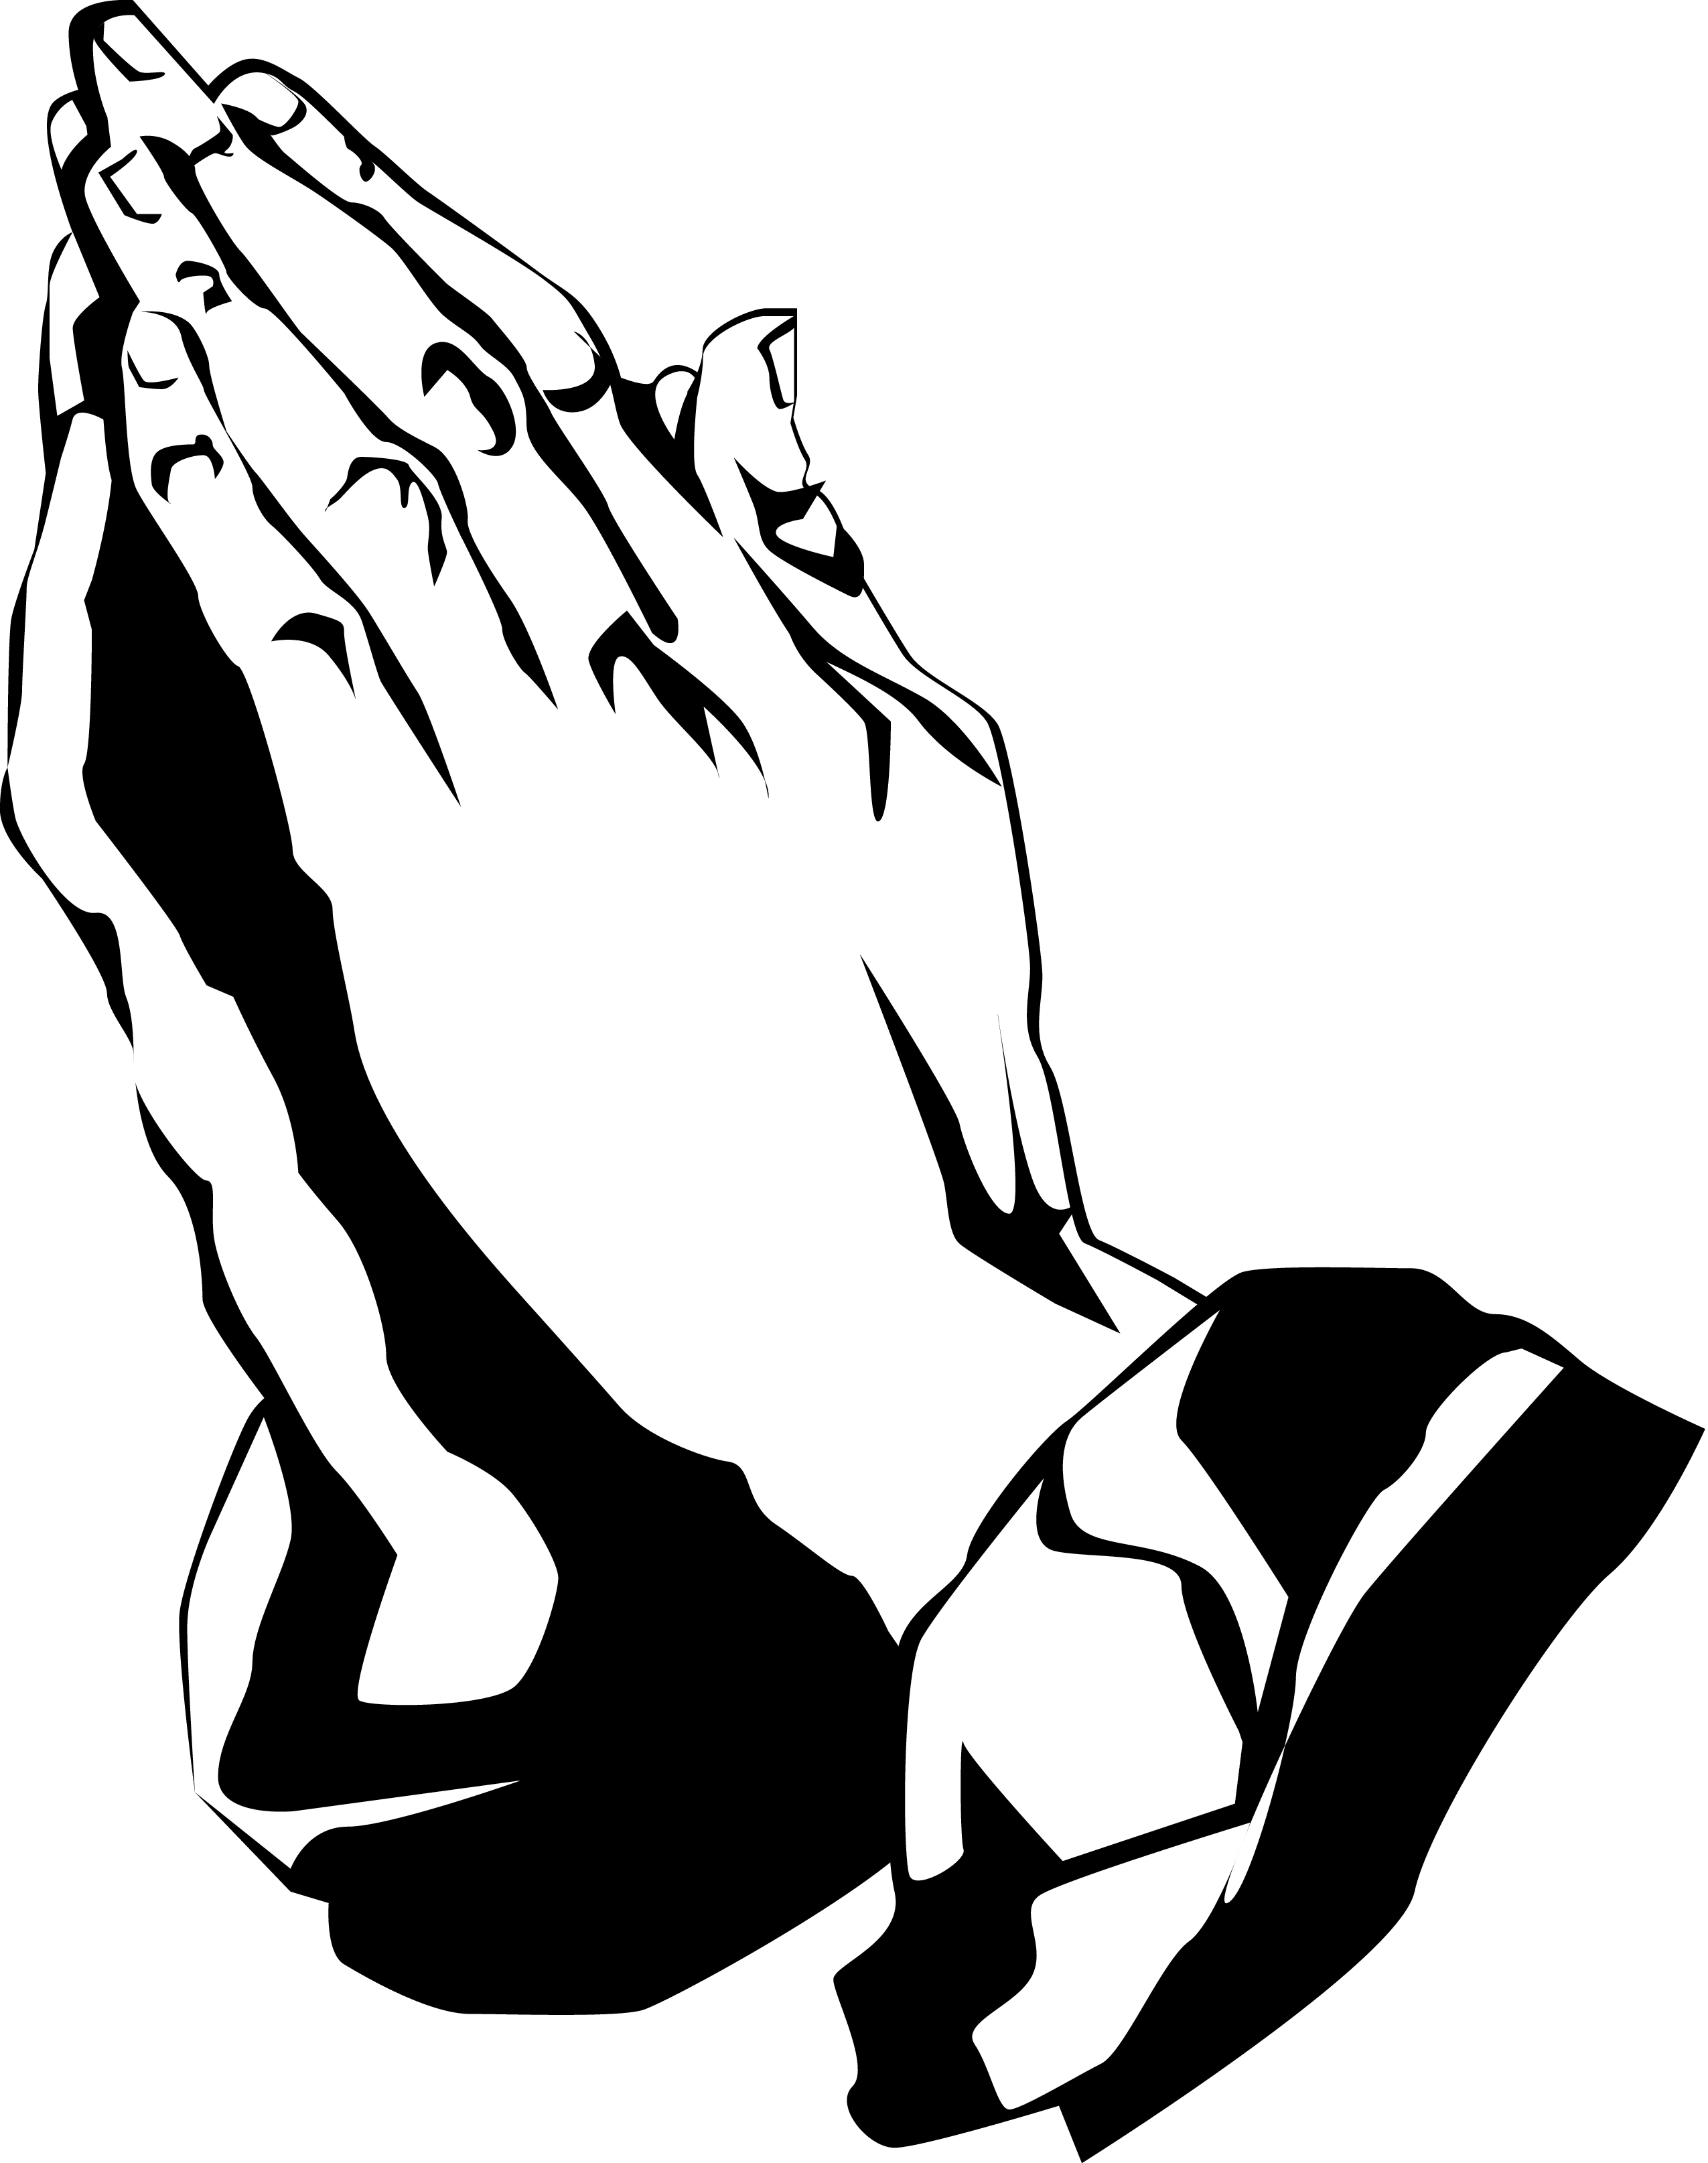 Prayer Hands Clipart   Clipart Panda   Free Clipart Images